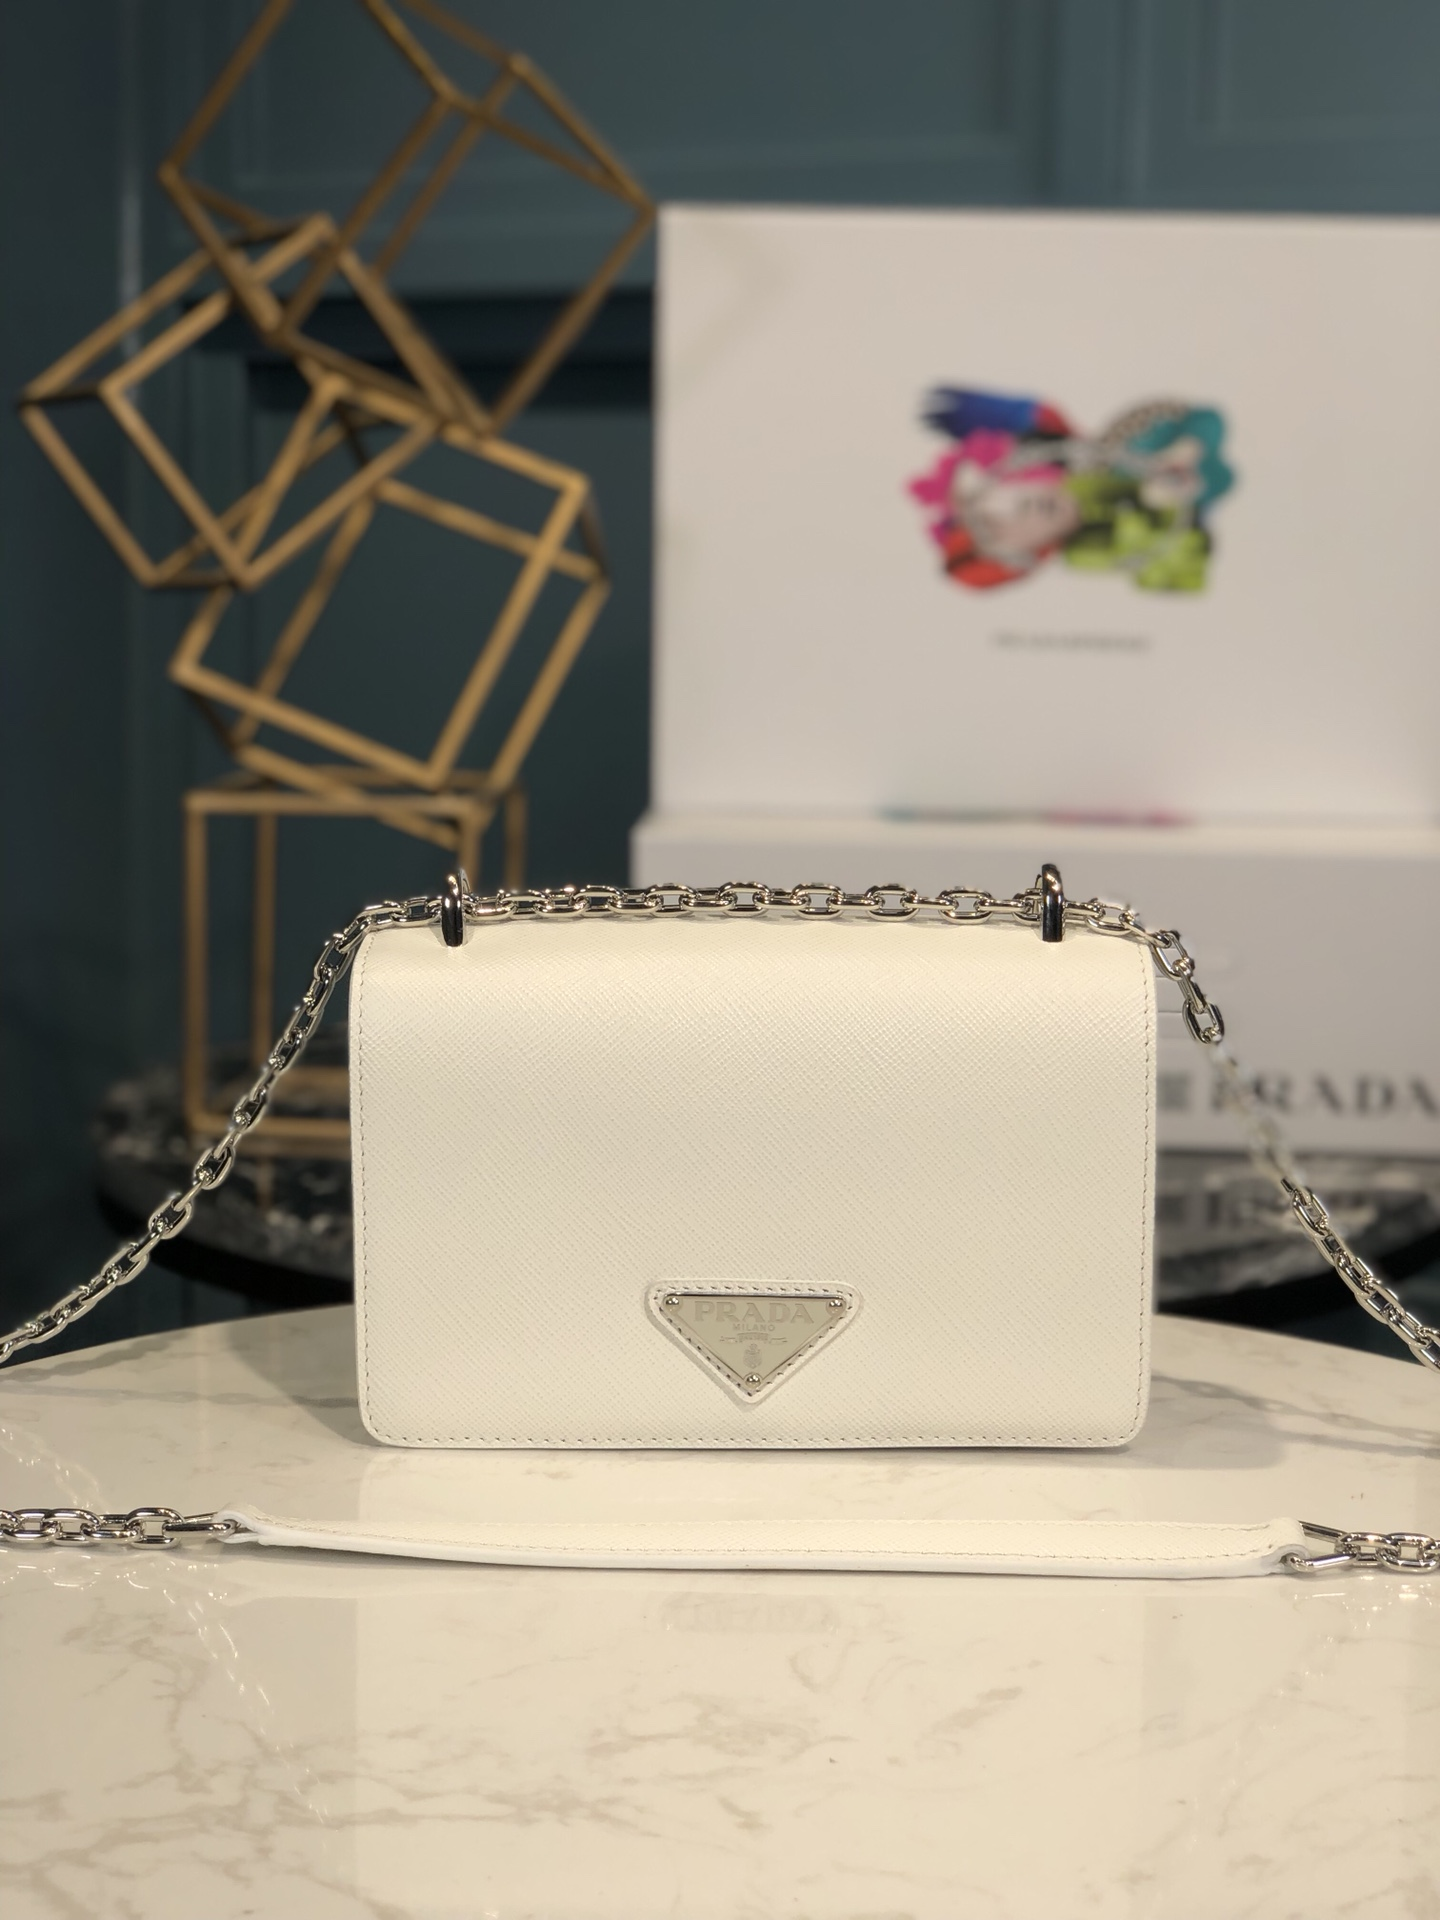 Copy Prada 1BD032 Nylon and Saffiano Leather Shoulder Bag White